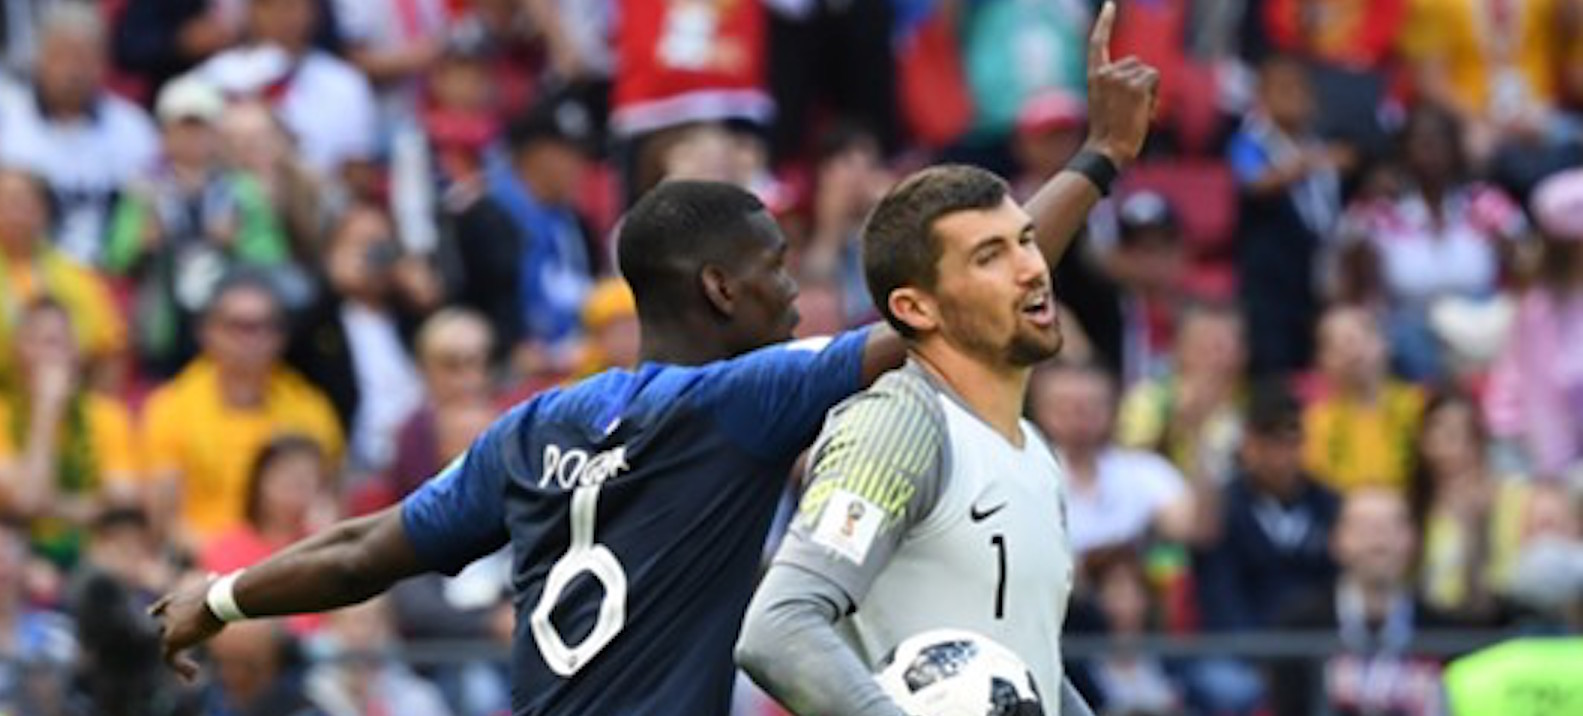 Paul Pogba expresses his delight after reaching the World Cup final